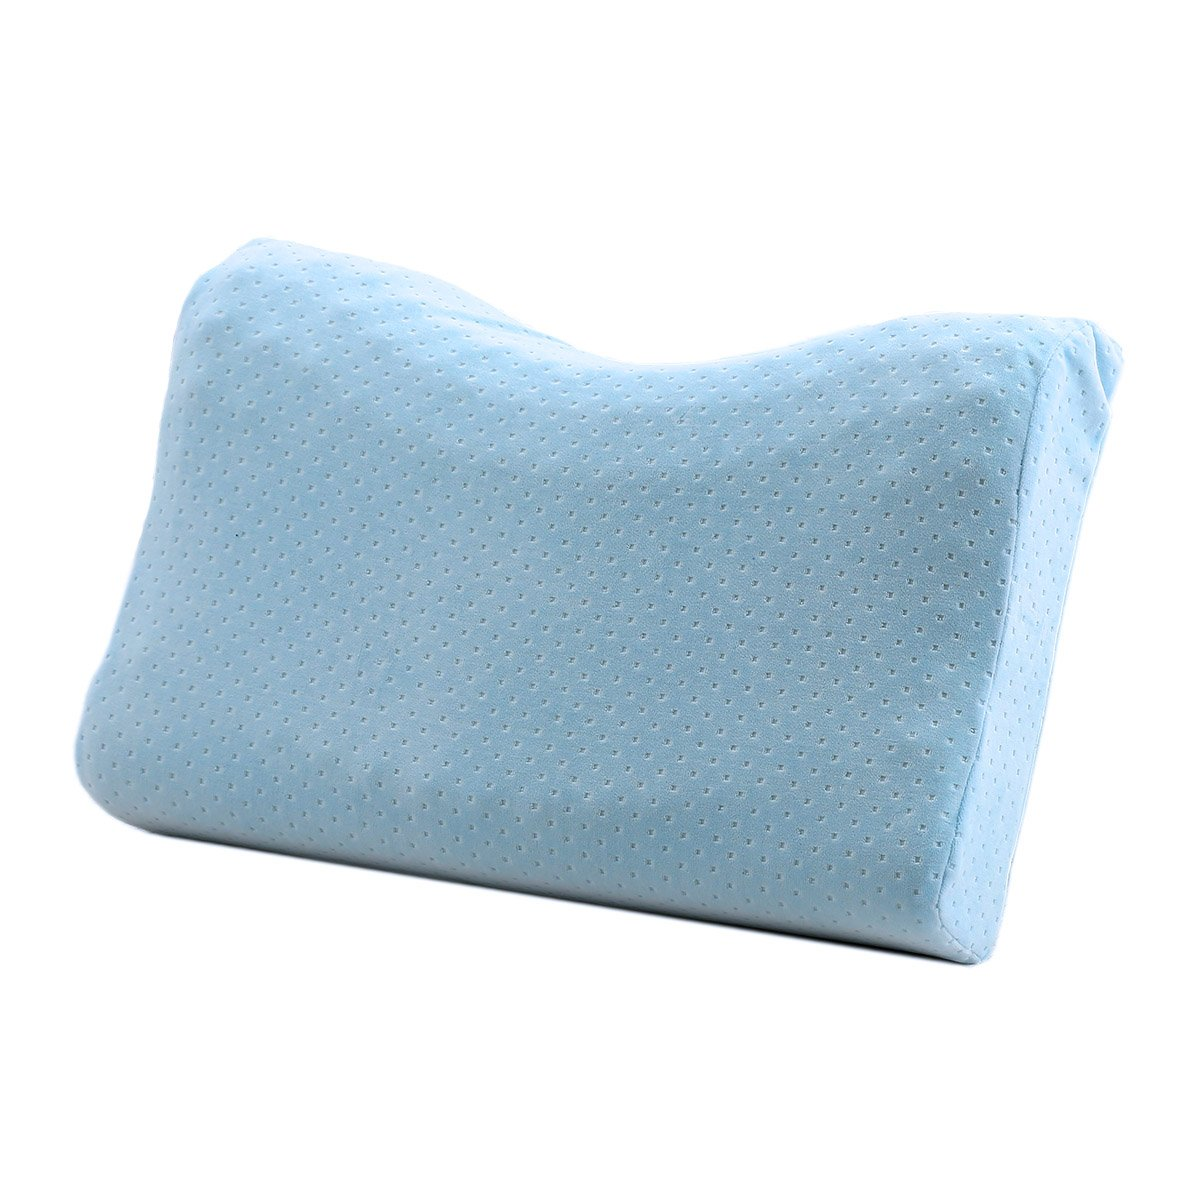 Crescent-Shaped Memory Foam Pillow | Cervical Support Pillow | Breathable Washable Cover | - Standard Size